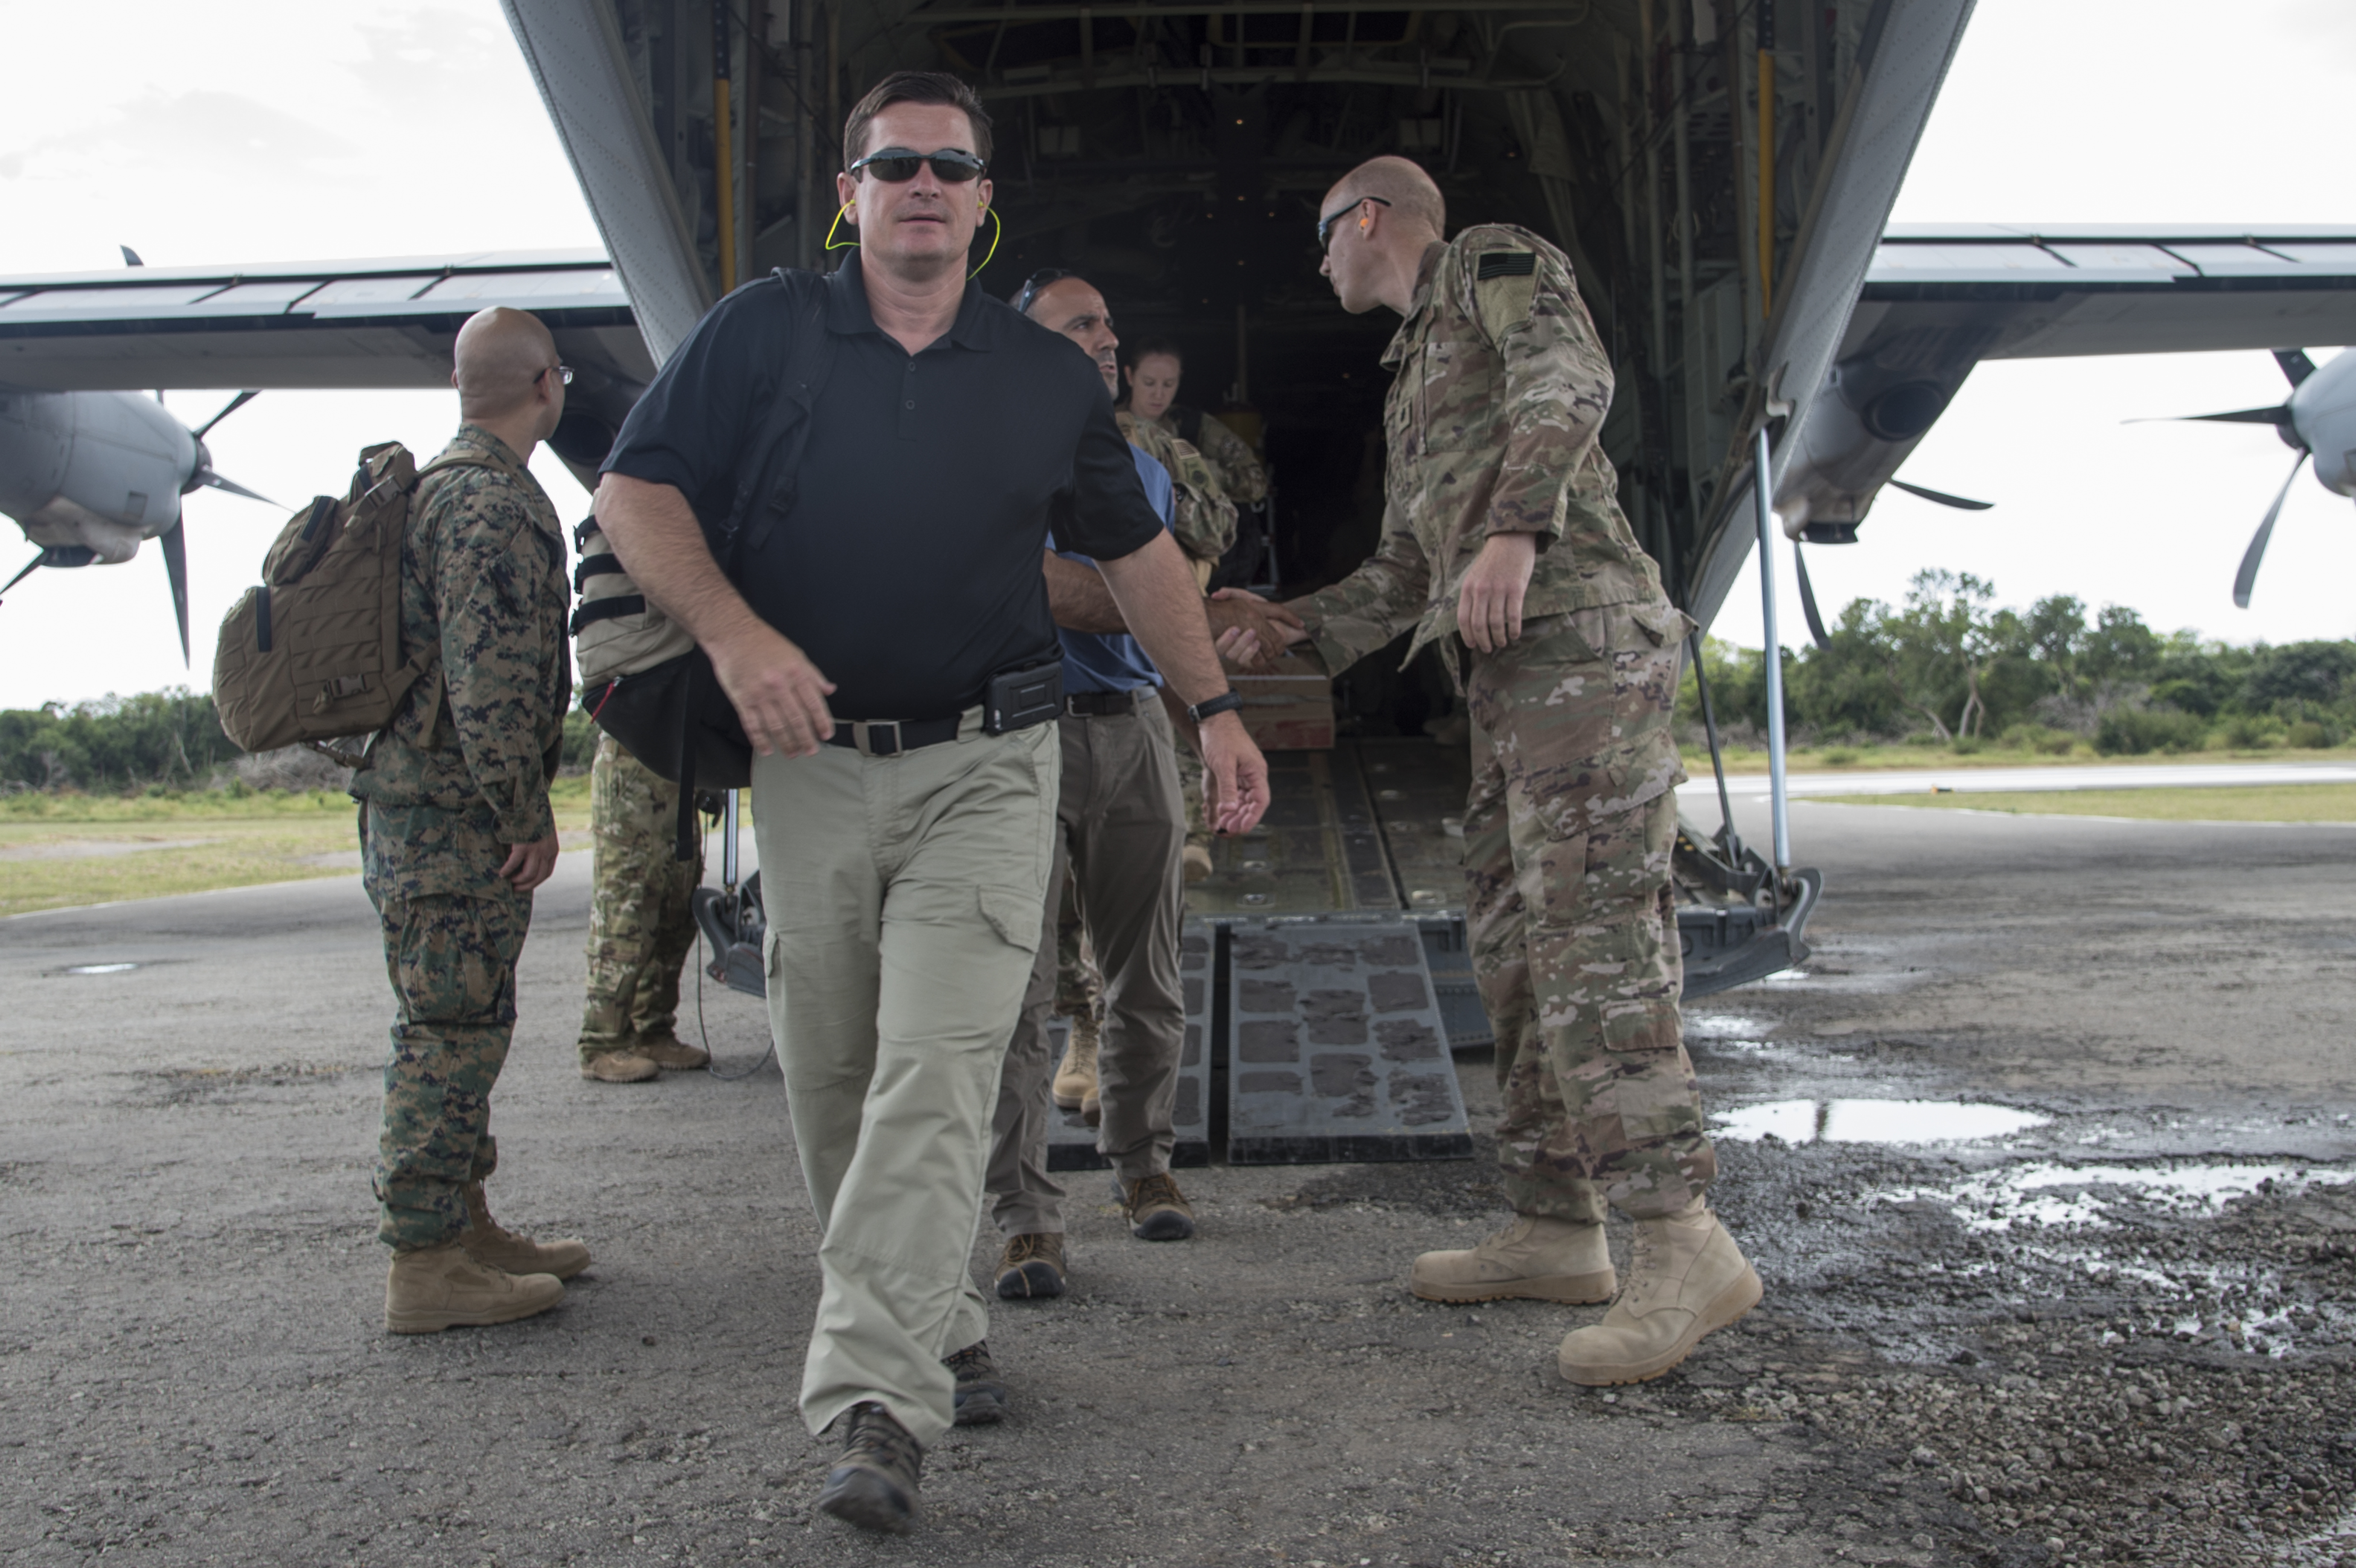 Rep. Austin Scott (R-Ga.) and Rep. Jimmy Panetta (D-Calif.) are greeted by military members as members at a forward operating location in East Africa as part of a congressional delegation (CODEL) visit on Aug. 27, 2017. The group visited various locations in the Combined Joint Task Force - Horn of Africa area of responsibility, including Somalia, to meet U.S. service members and learn more about the U.S. military mission in East Africa. This is the first time in three years a CODEL has visited Somalia. The CODEL included the following congressmen, all of whom are on the House Armed Service Committee; Rep. Austin Scott representing the 8th District of Georgia, Jimmy Panetta representing the 20th District of California and Marc Veasey (D-Texas) representing the 33rd District of Texas. (U.S. Air National Guard photo by Tech. Sgt. Joe Harwood)